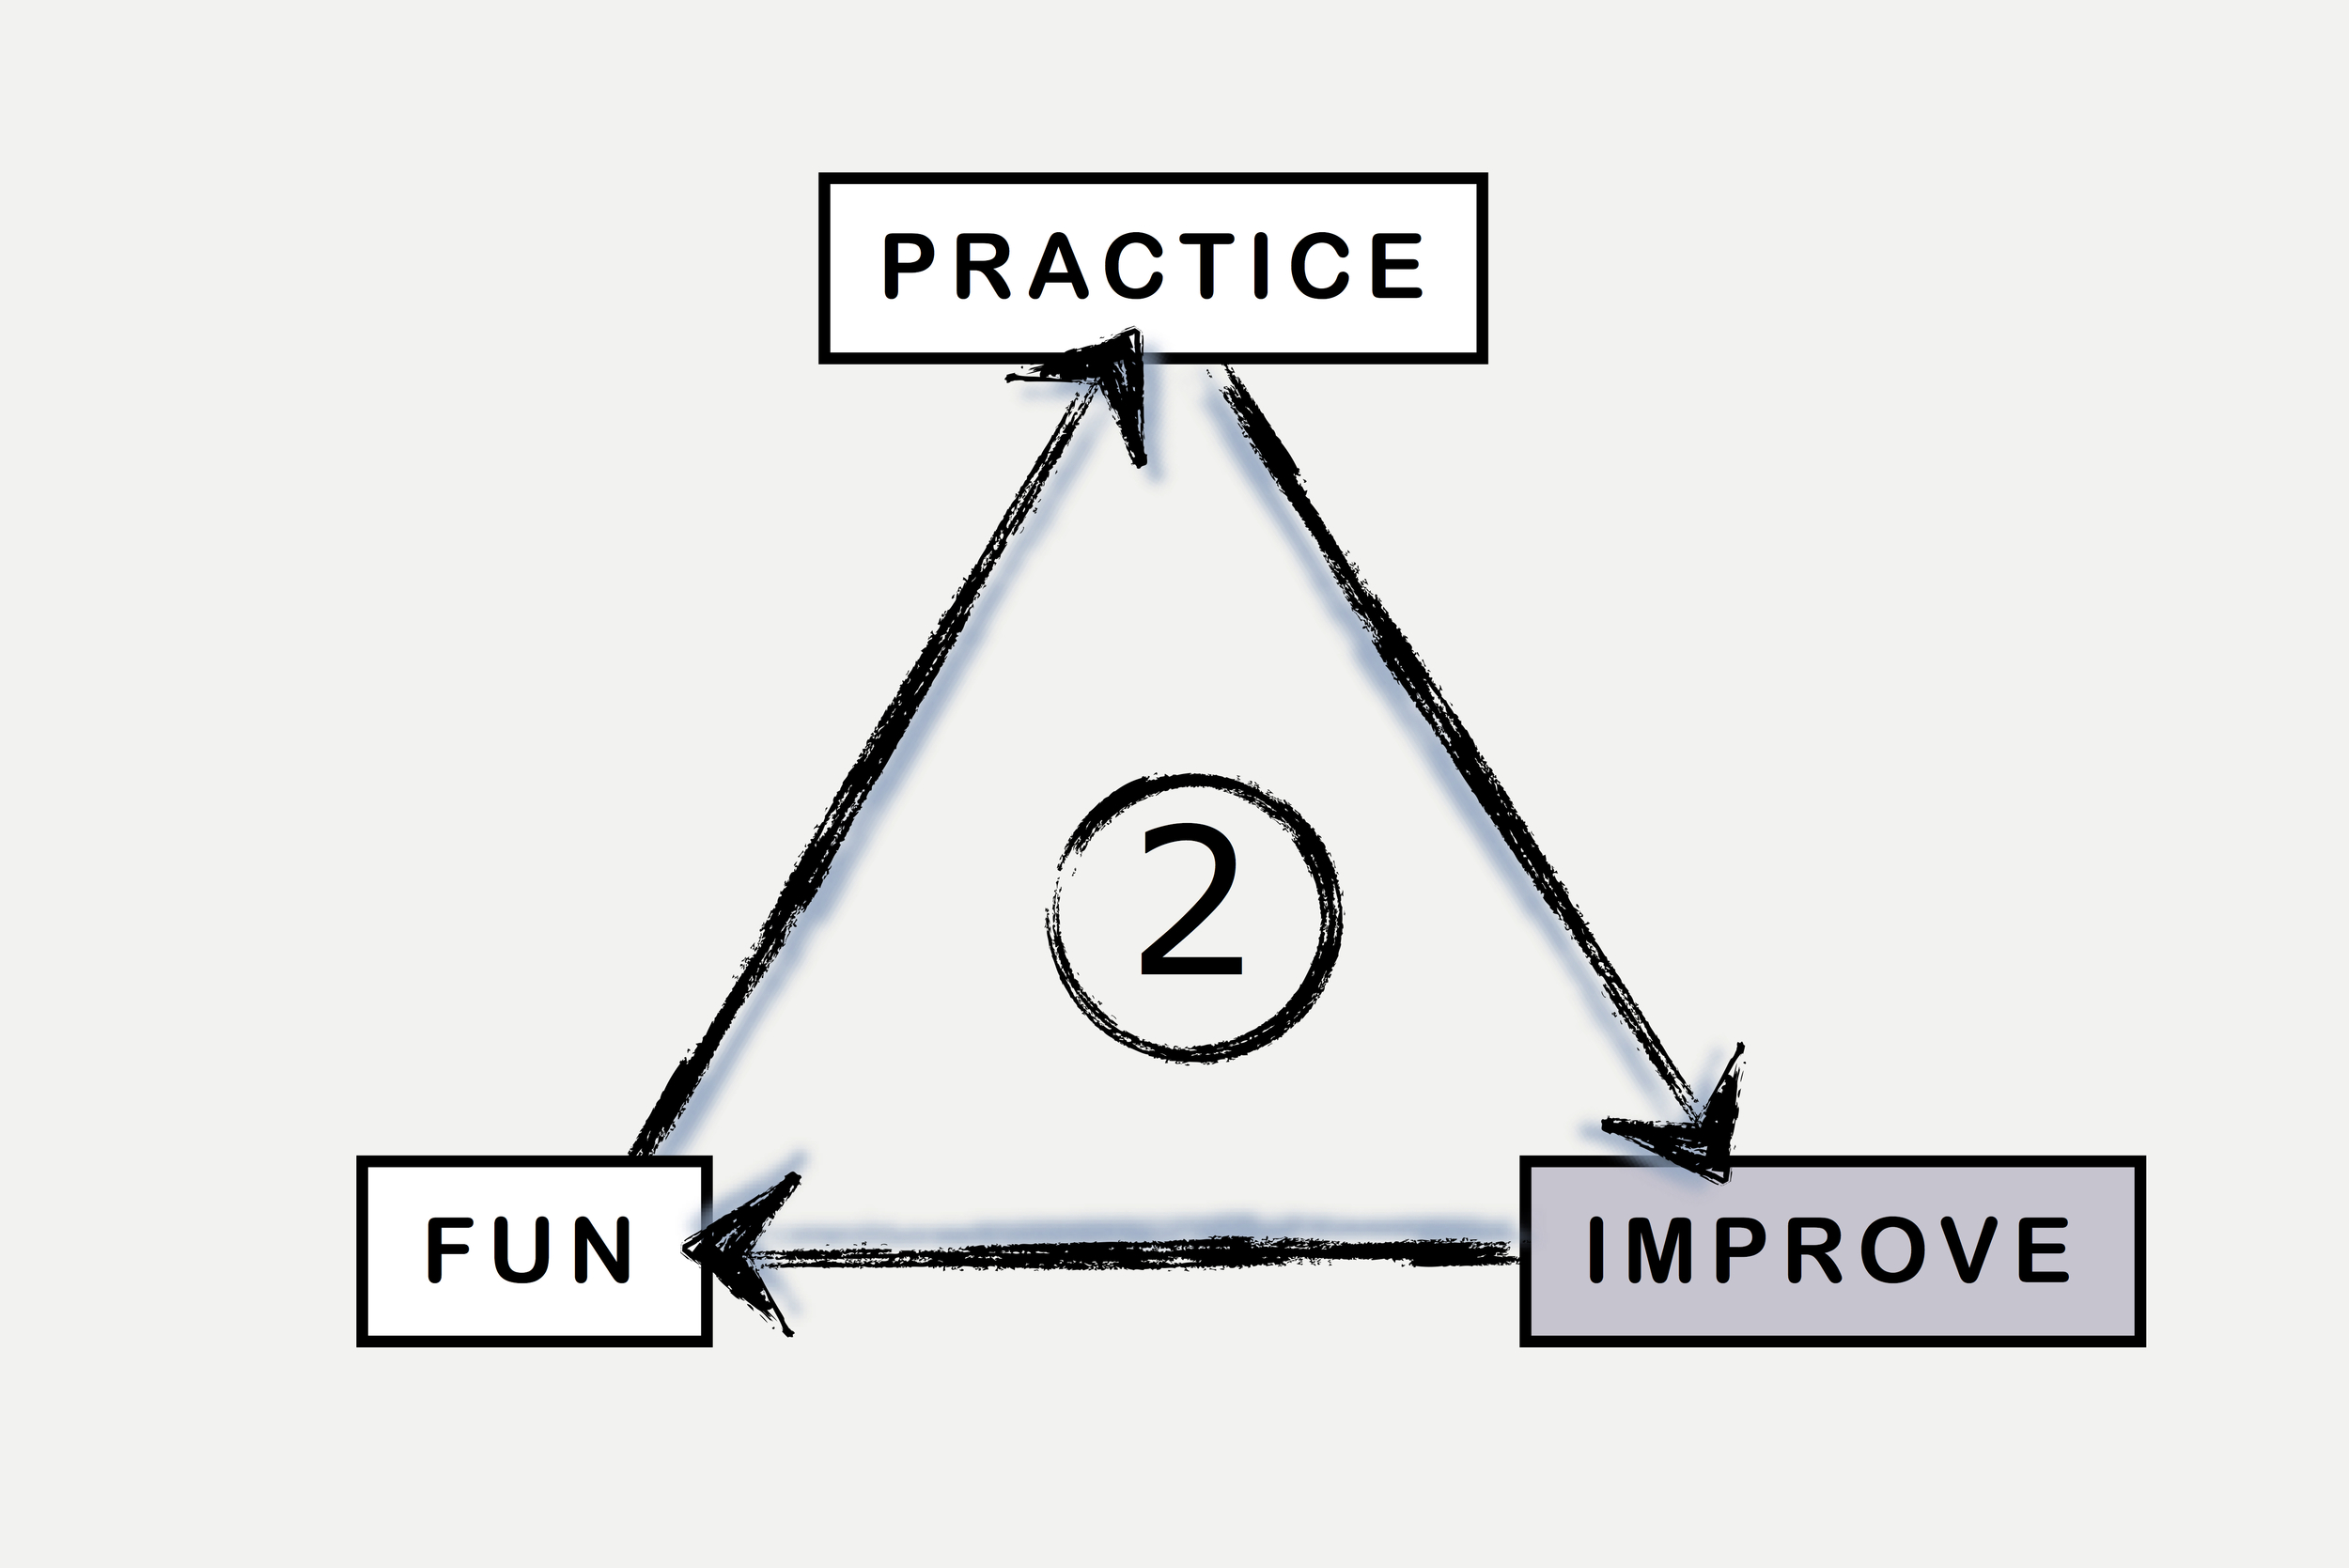 BML Practice Better Fun Triangle.2.jpg